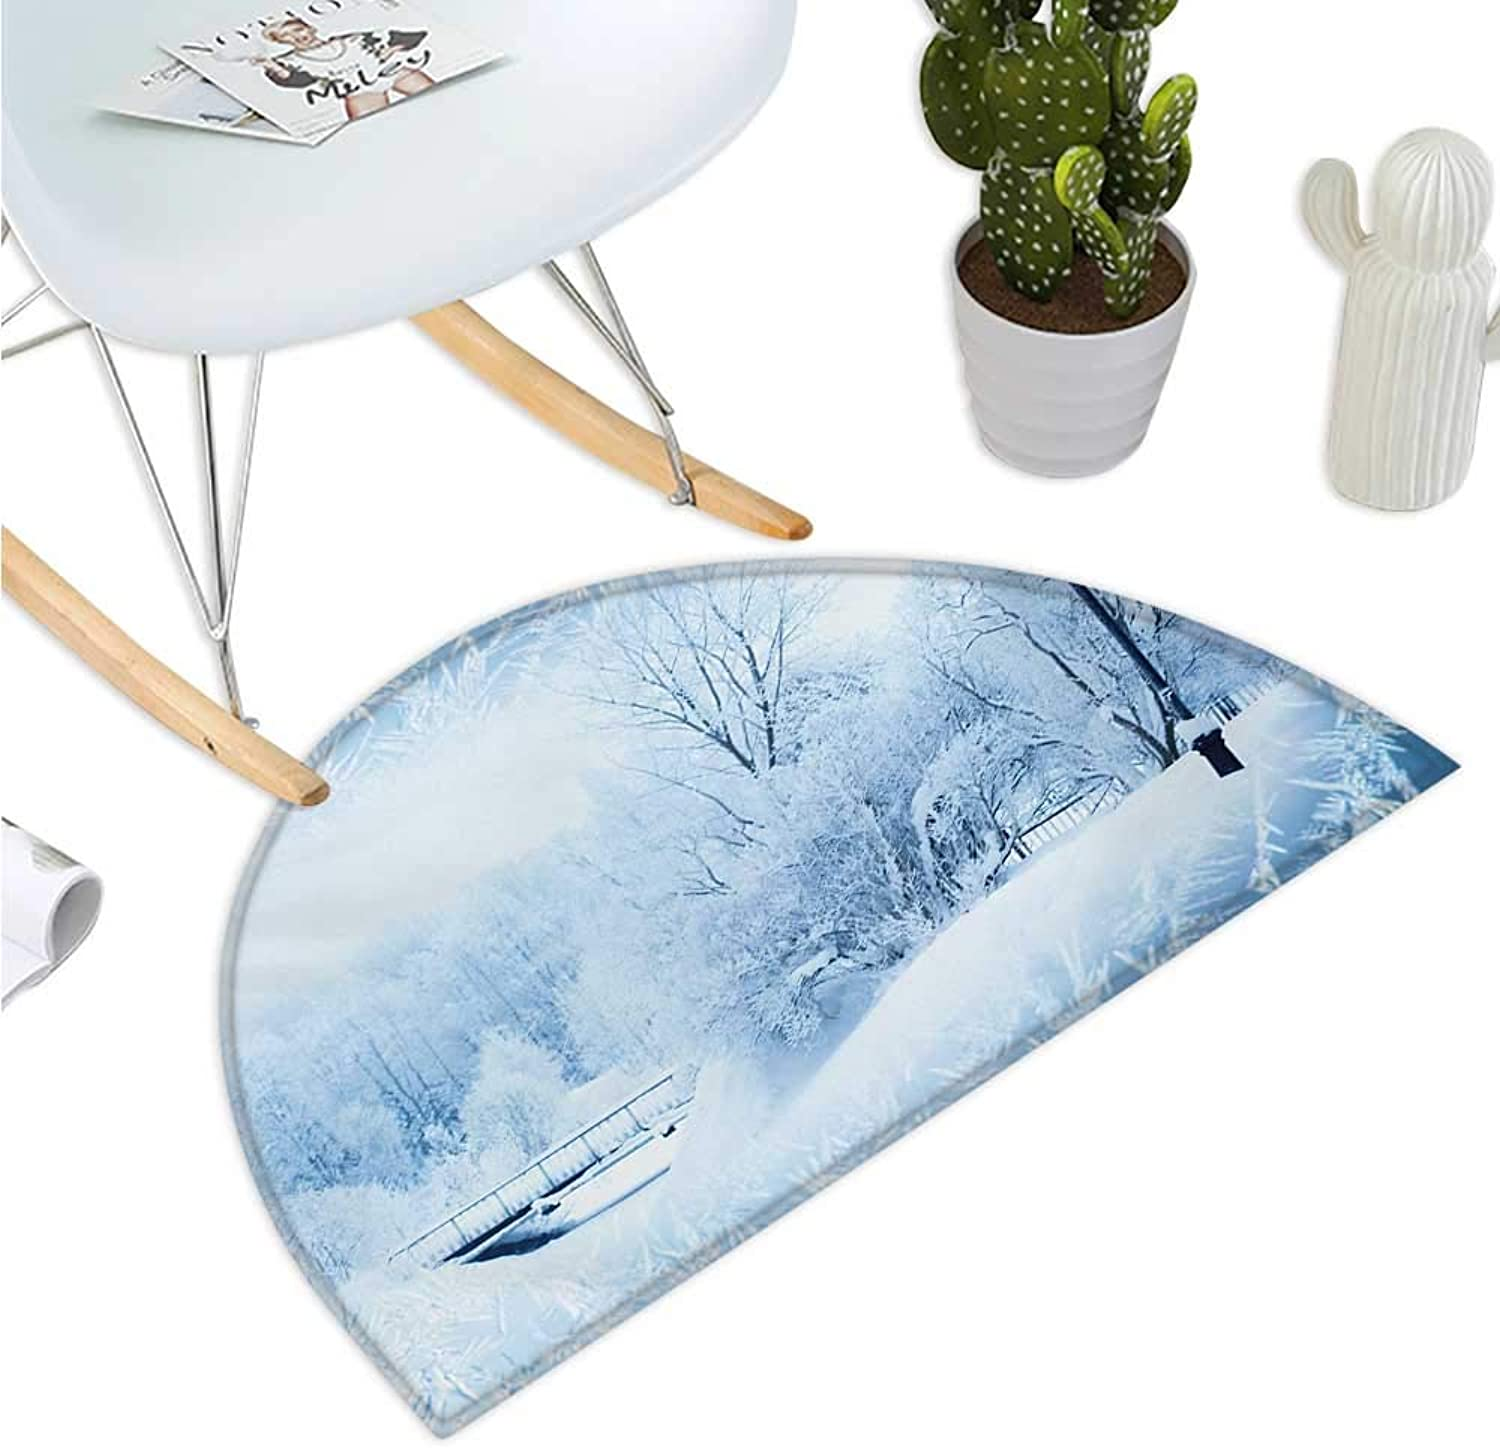 Winter Half Round Door mats Winter Trees in Wonderland Theme Christmas Year Scenery Freezing ICY Weather Entry Door Mat H 43.3  xD 64.9  bluee White